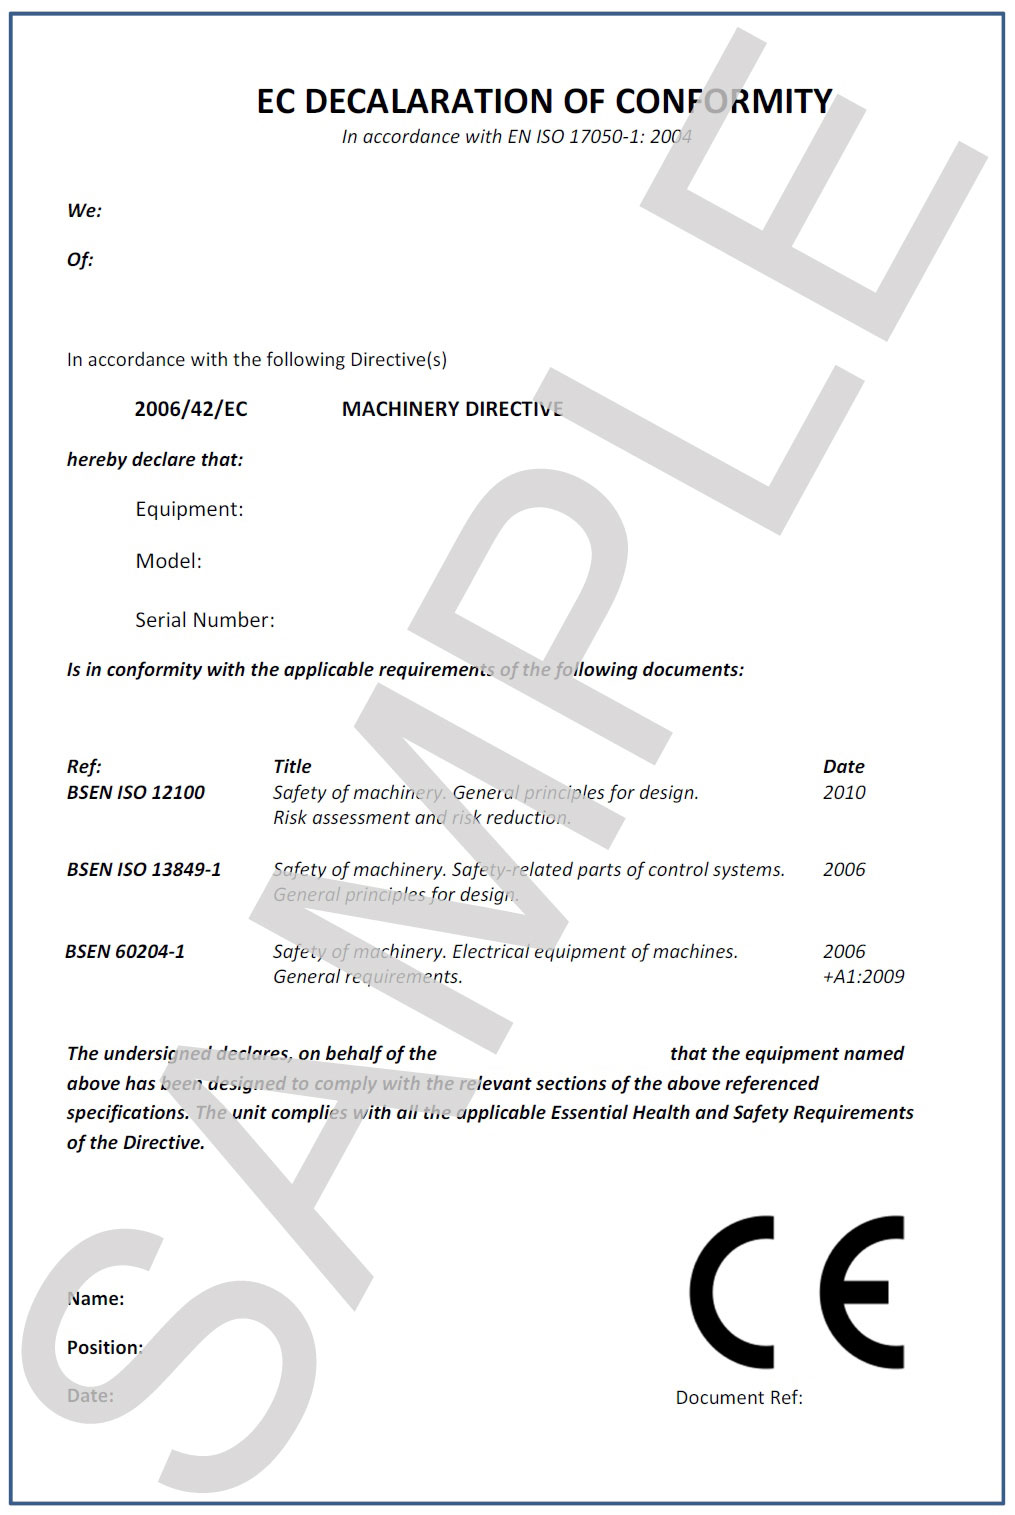 Certificate of conformity template 8749985 - metabo01.info